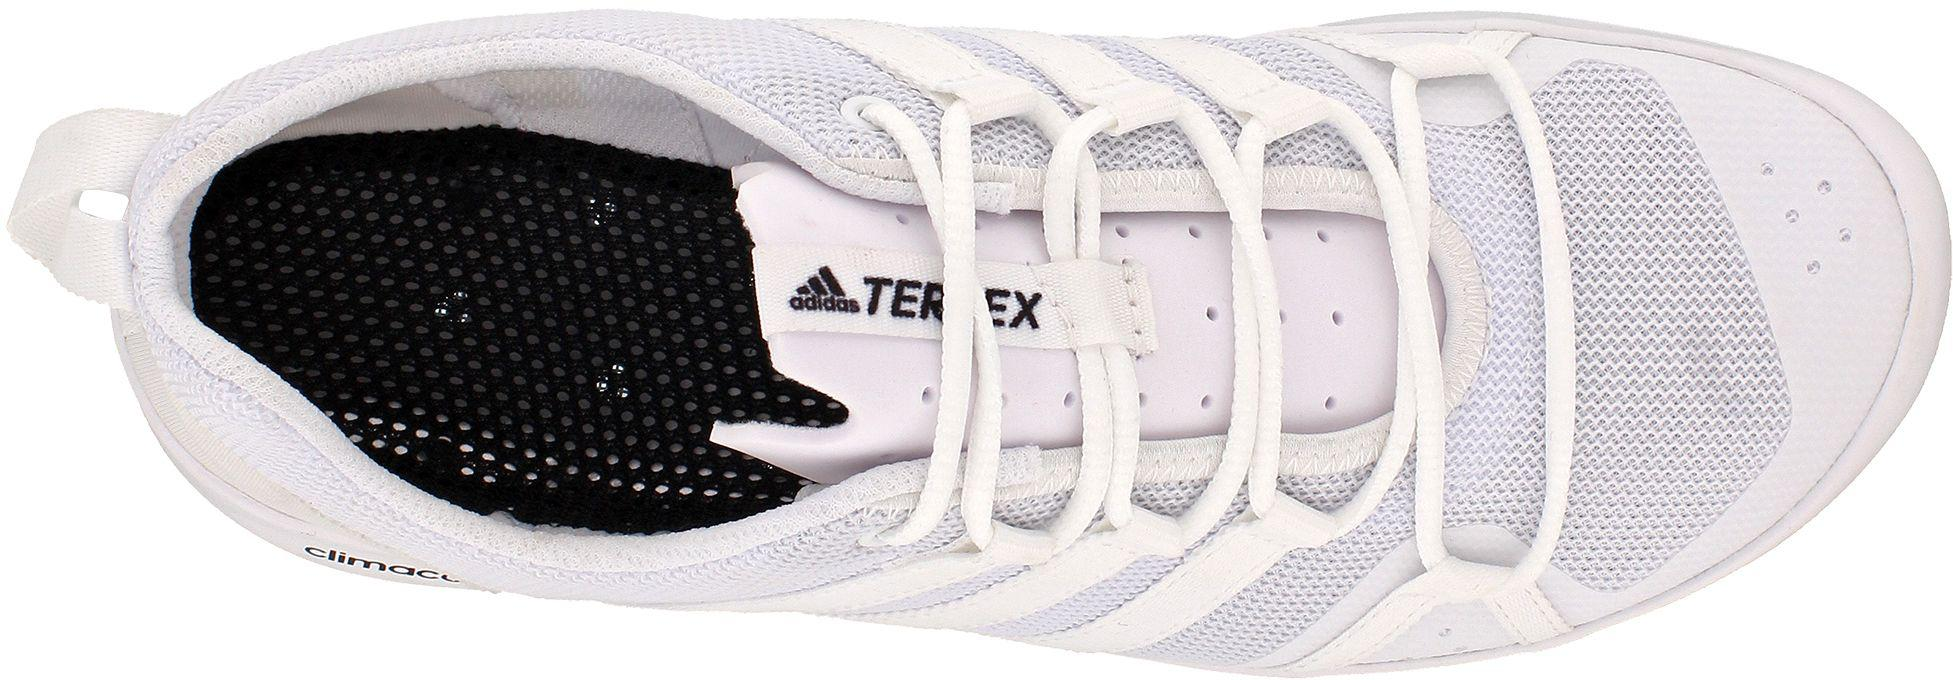 buy online 291f4 fbecd Lyst - adidas Outdoor Terrex Climacool Boat Sleek Water Shoe